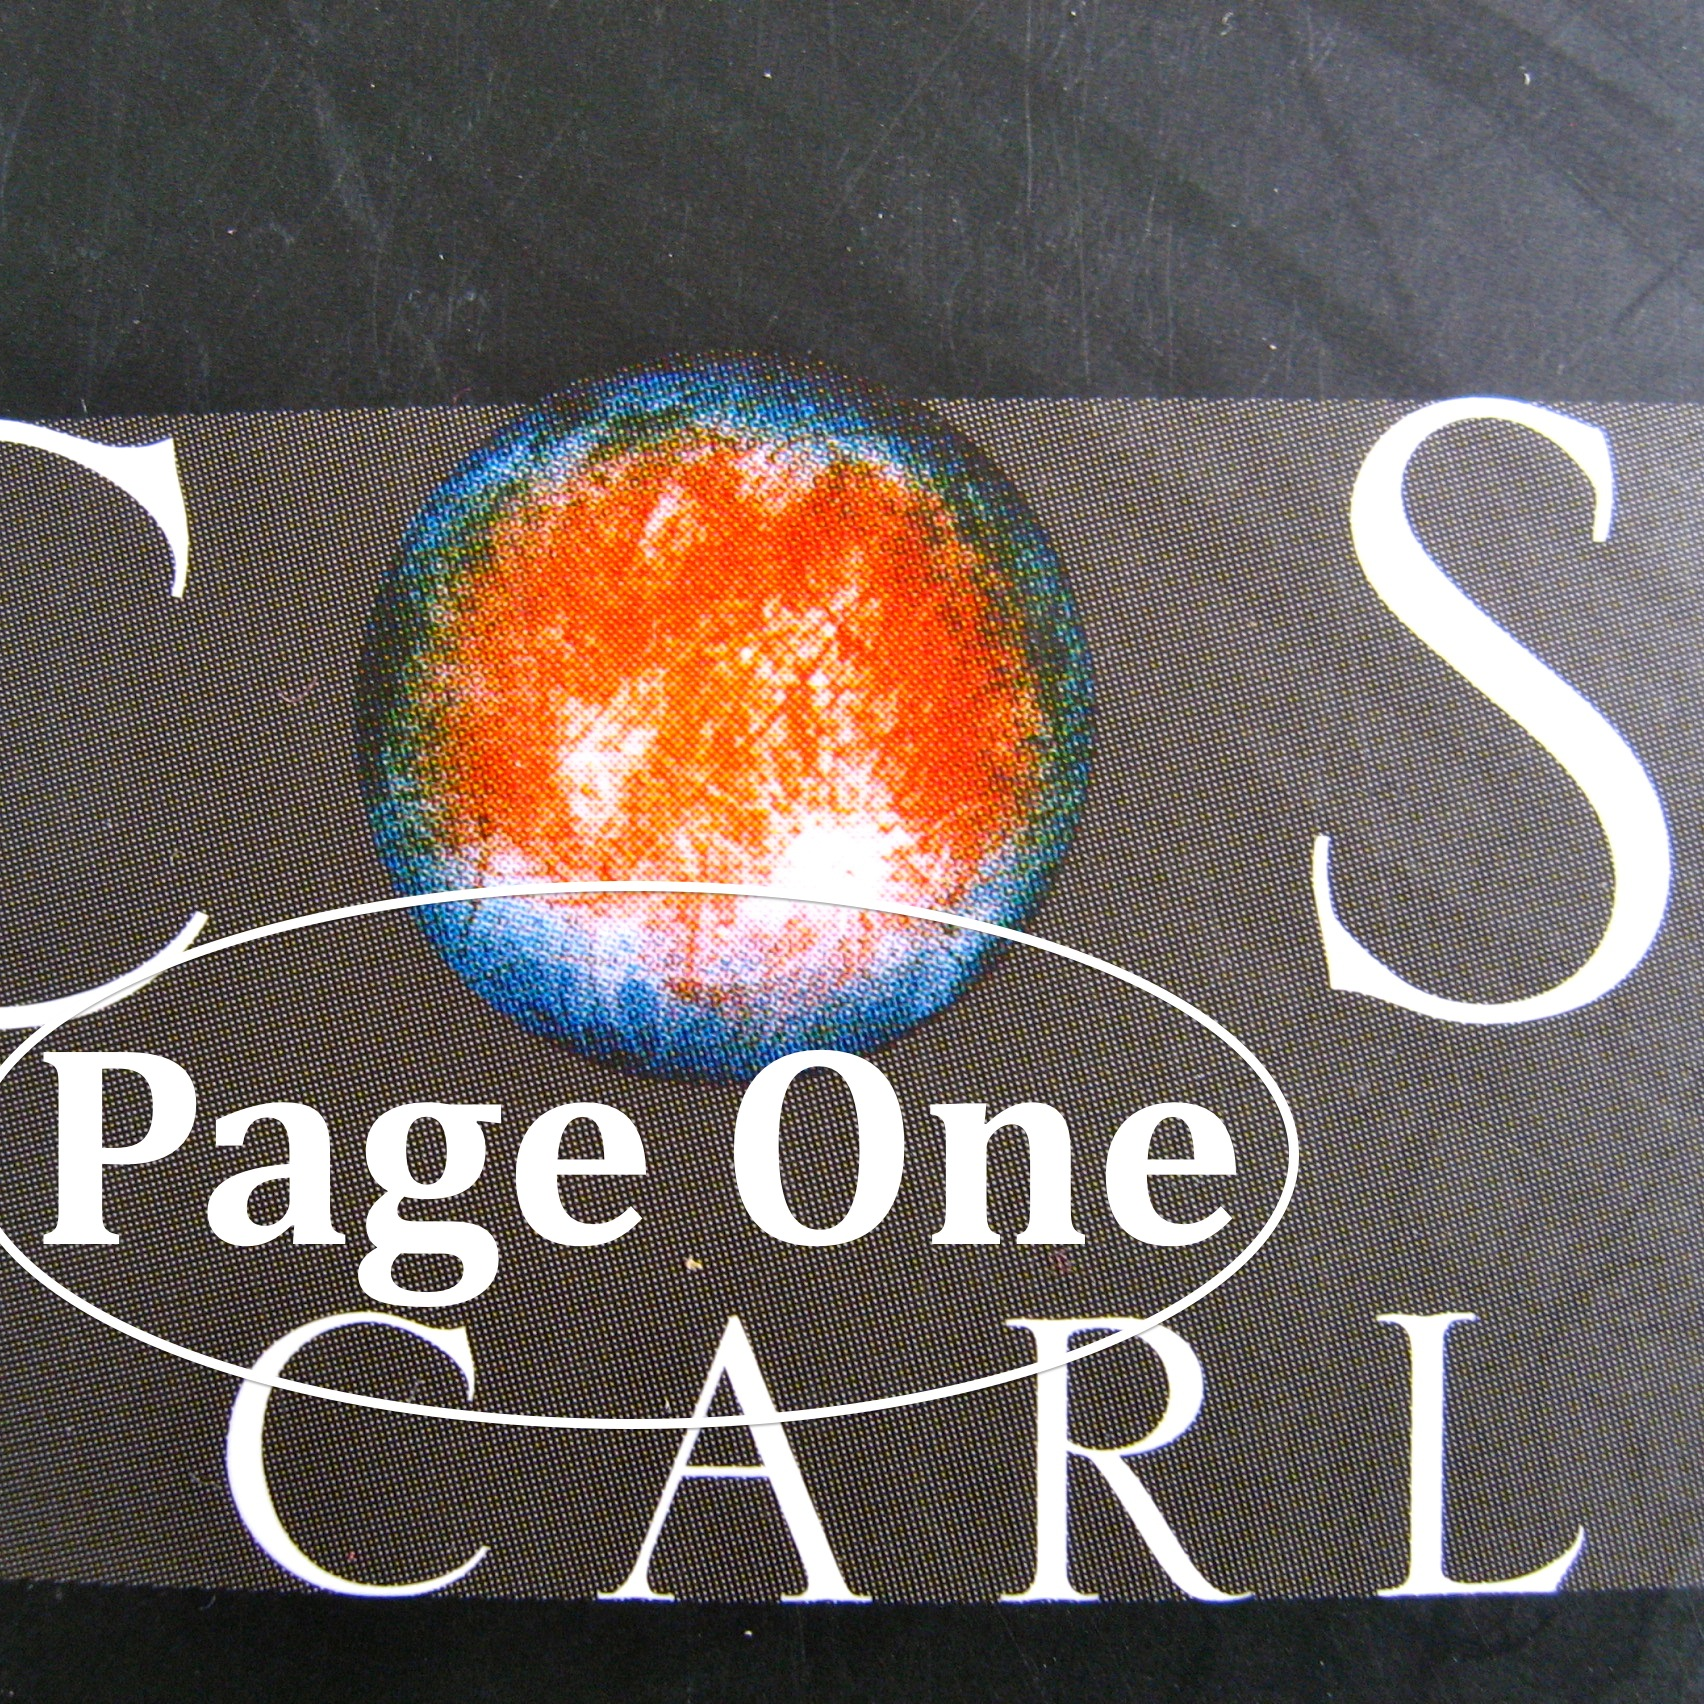 Episode image is a detail from the cover of Cosmos by Carl Sagan, published in 2012 by Abacus; cover photography: © Science Photo Library; cover design: Keenan.